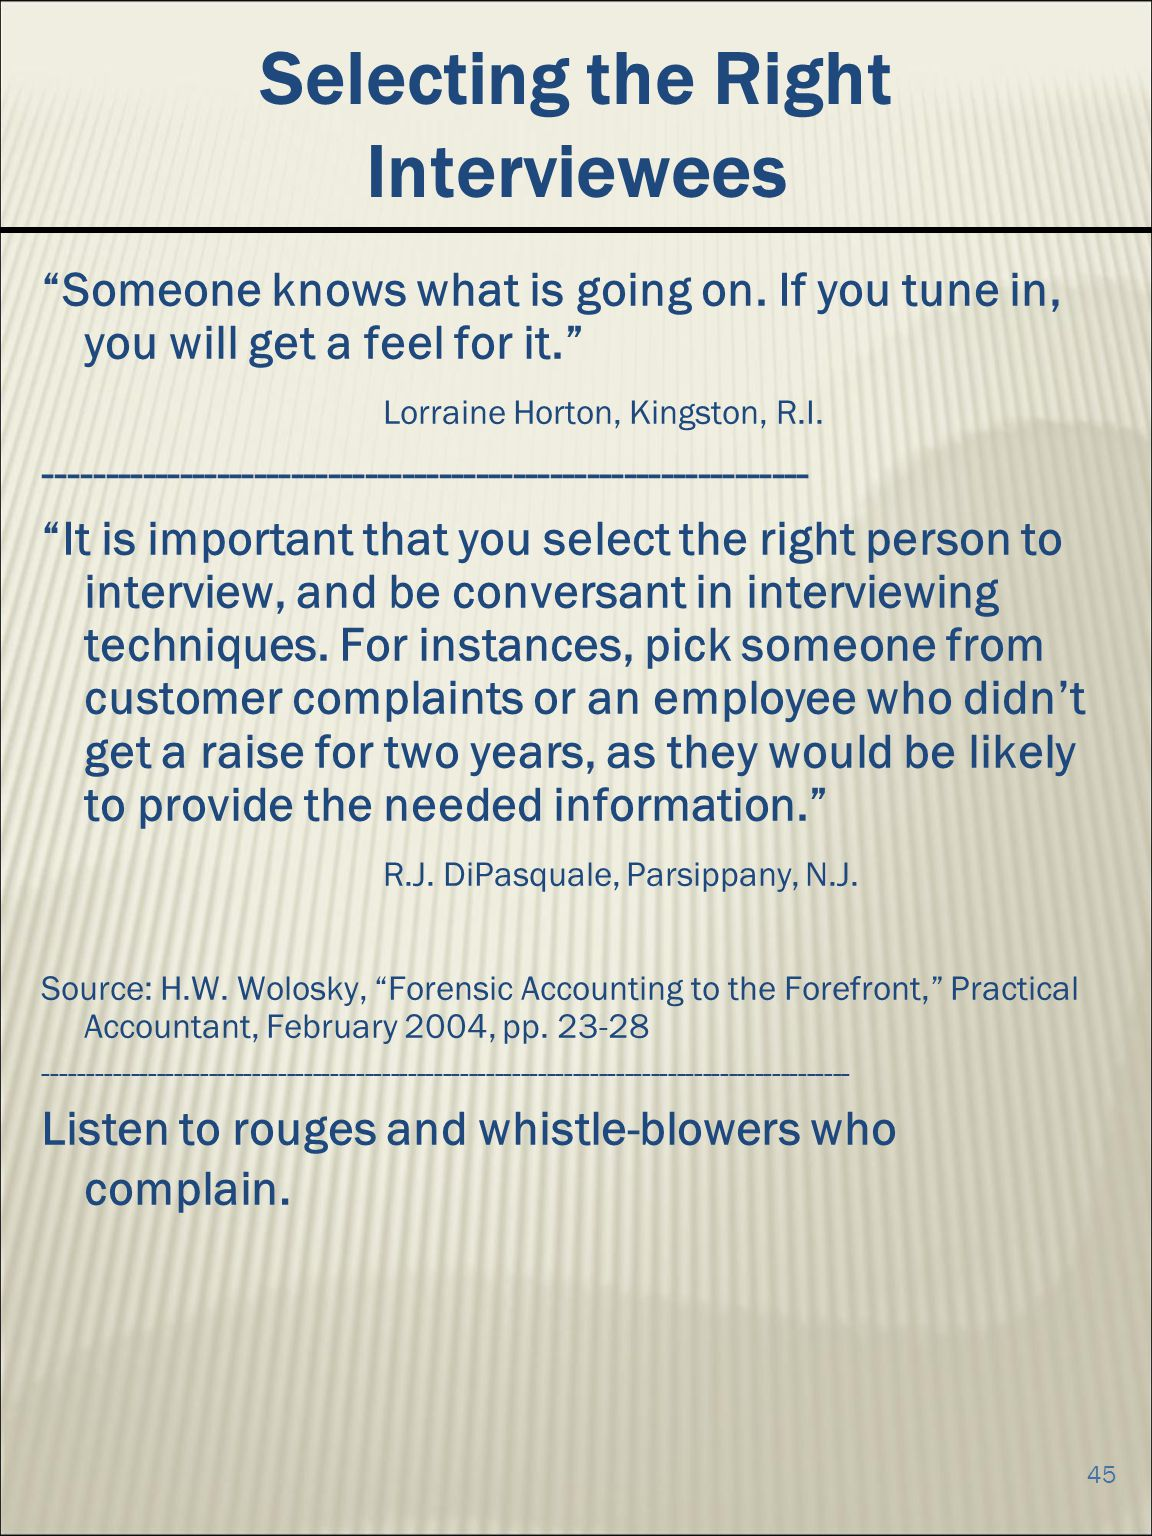 Selecting the Right Interviewees